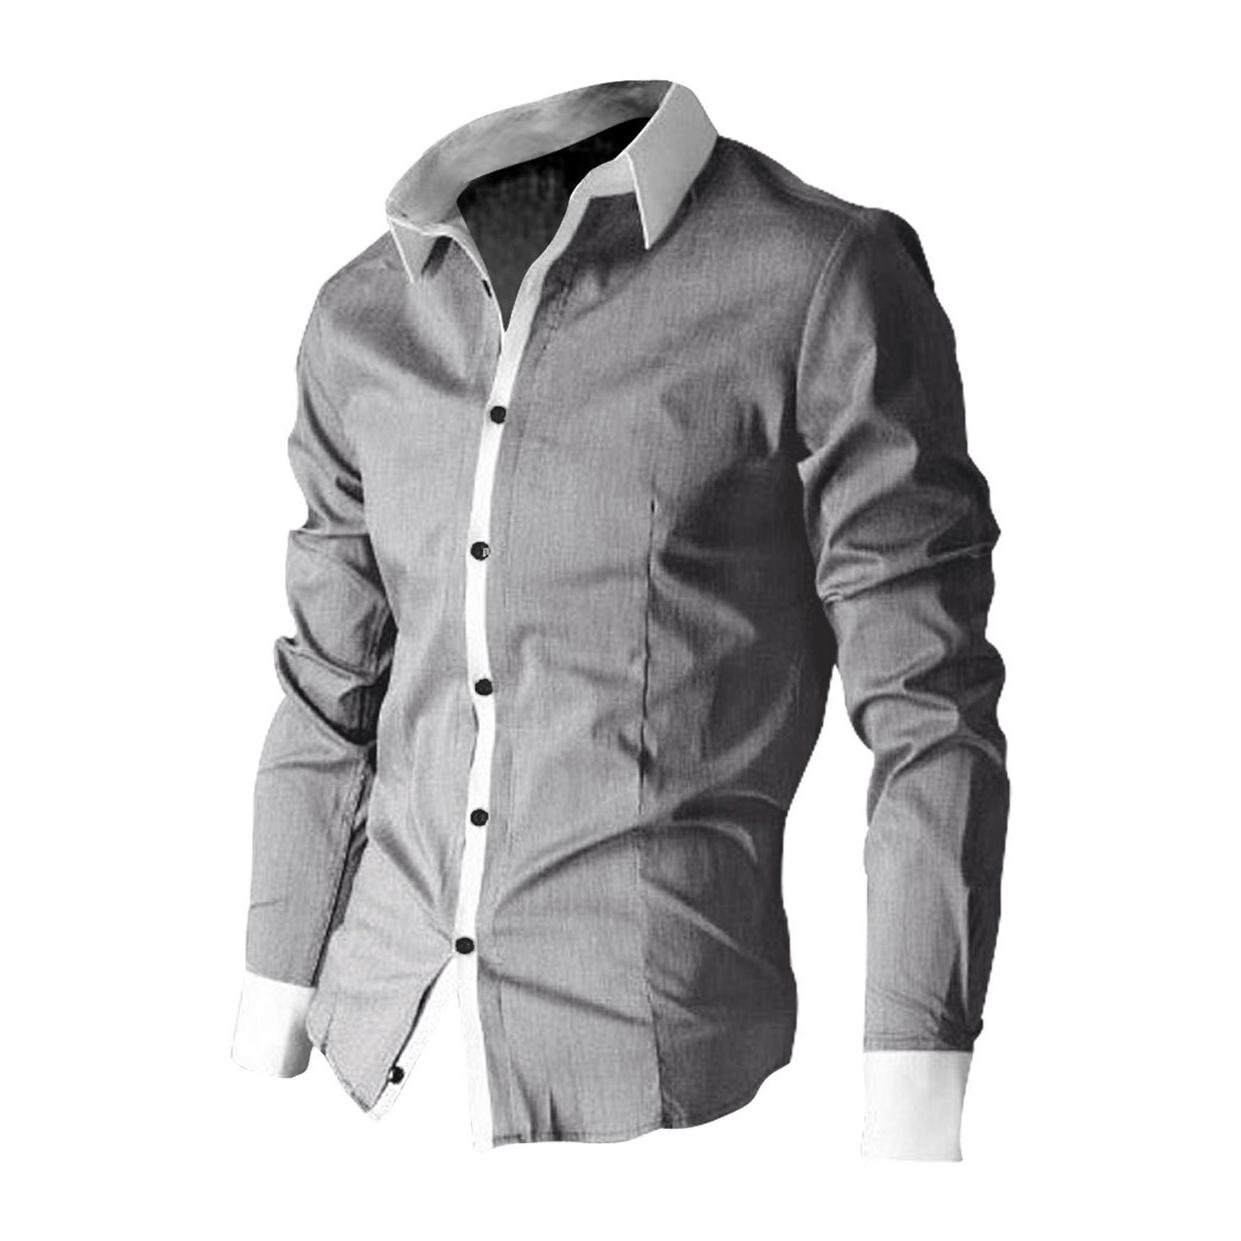 e61a7afc82f Wholesale- 2017 NEW Men Dress Shirts Long Sleeved Casual Shirt with ...